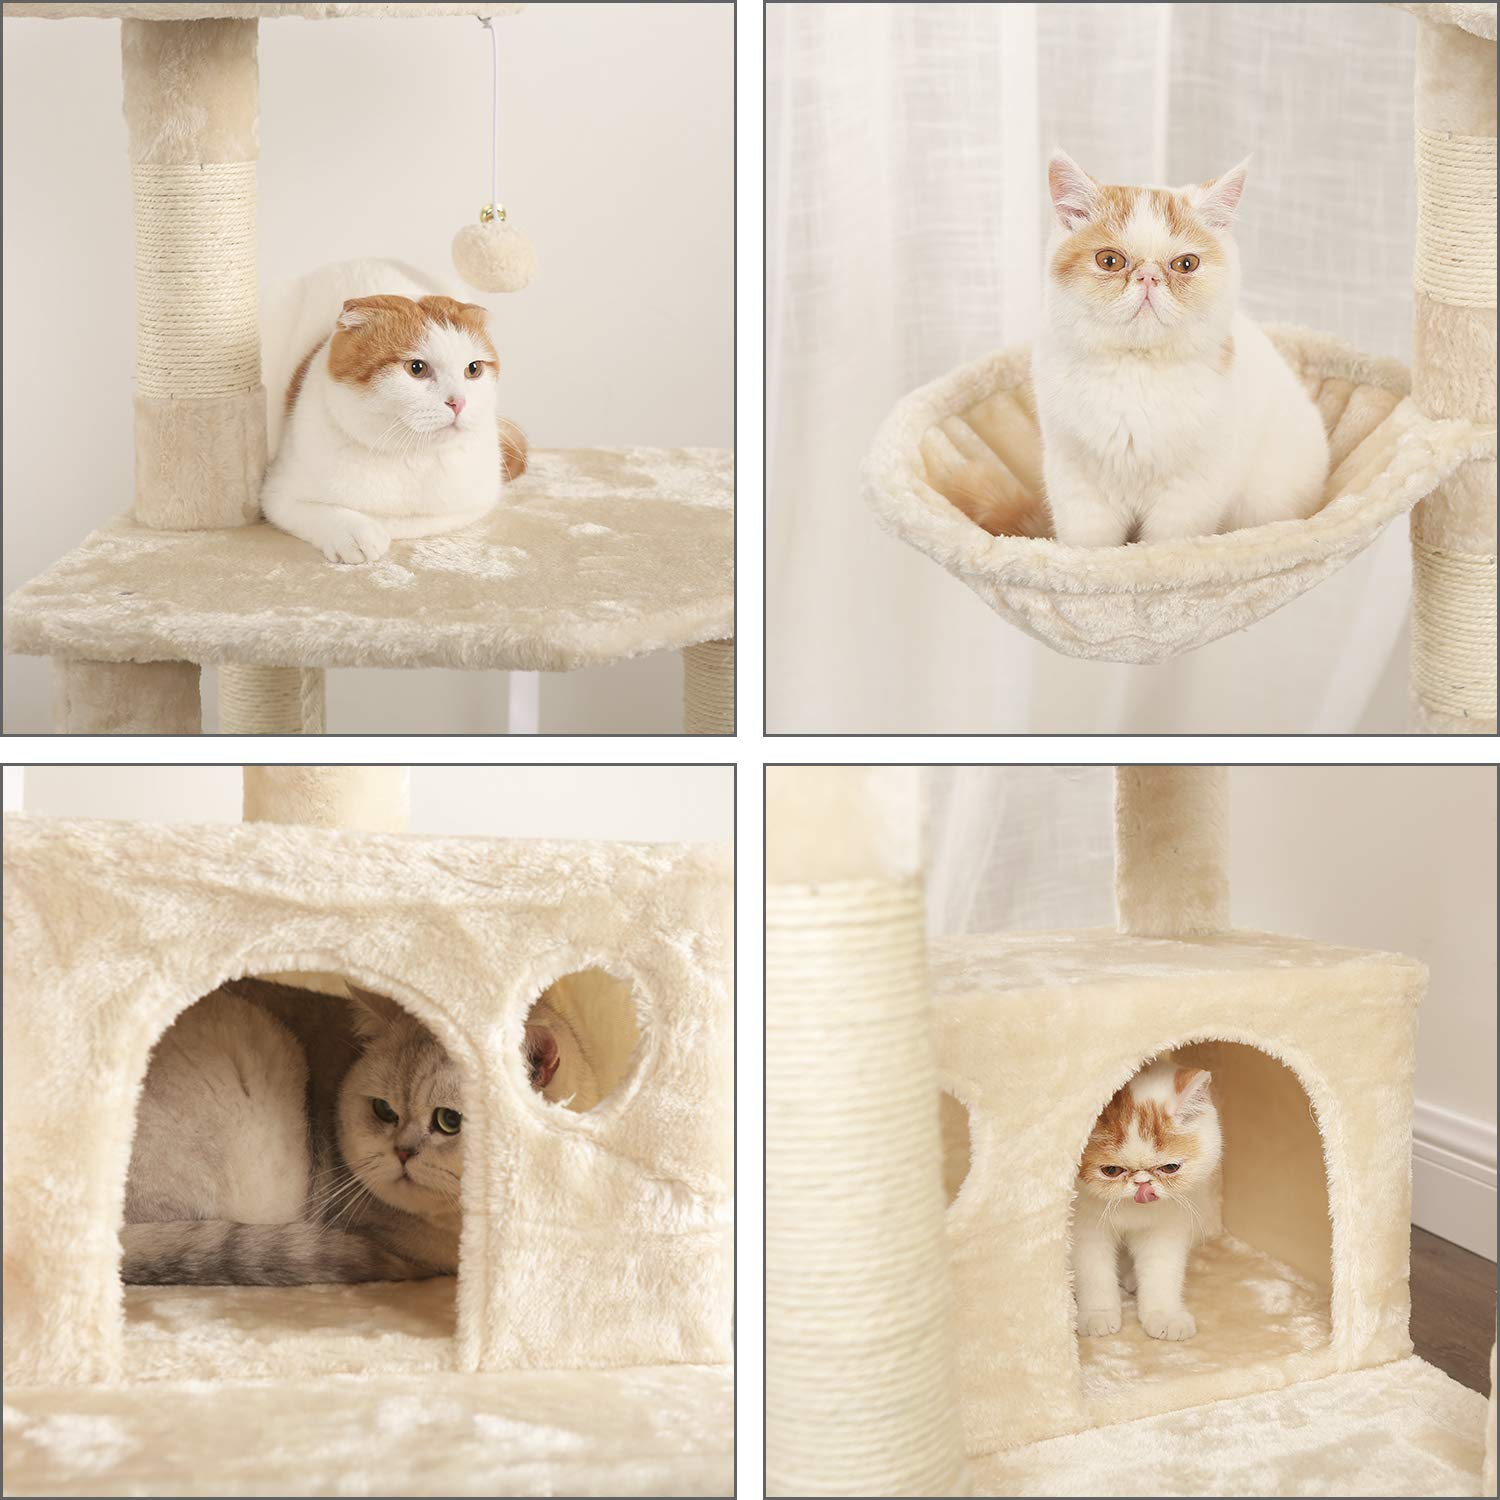 WLIVE 59'' Large Cat Tree Condo with Sisal Scratching Posts, 2 Plush Condos and Basket Lounger, Cat Tower Furniture WF062A by WLIVE (Image #5)